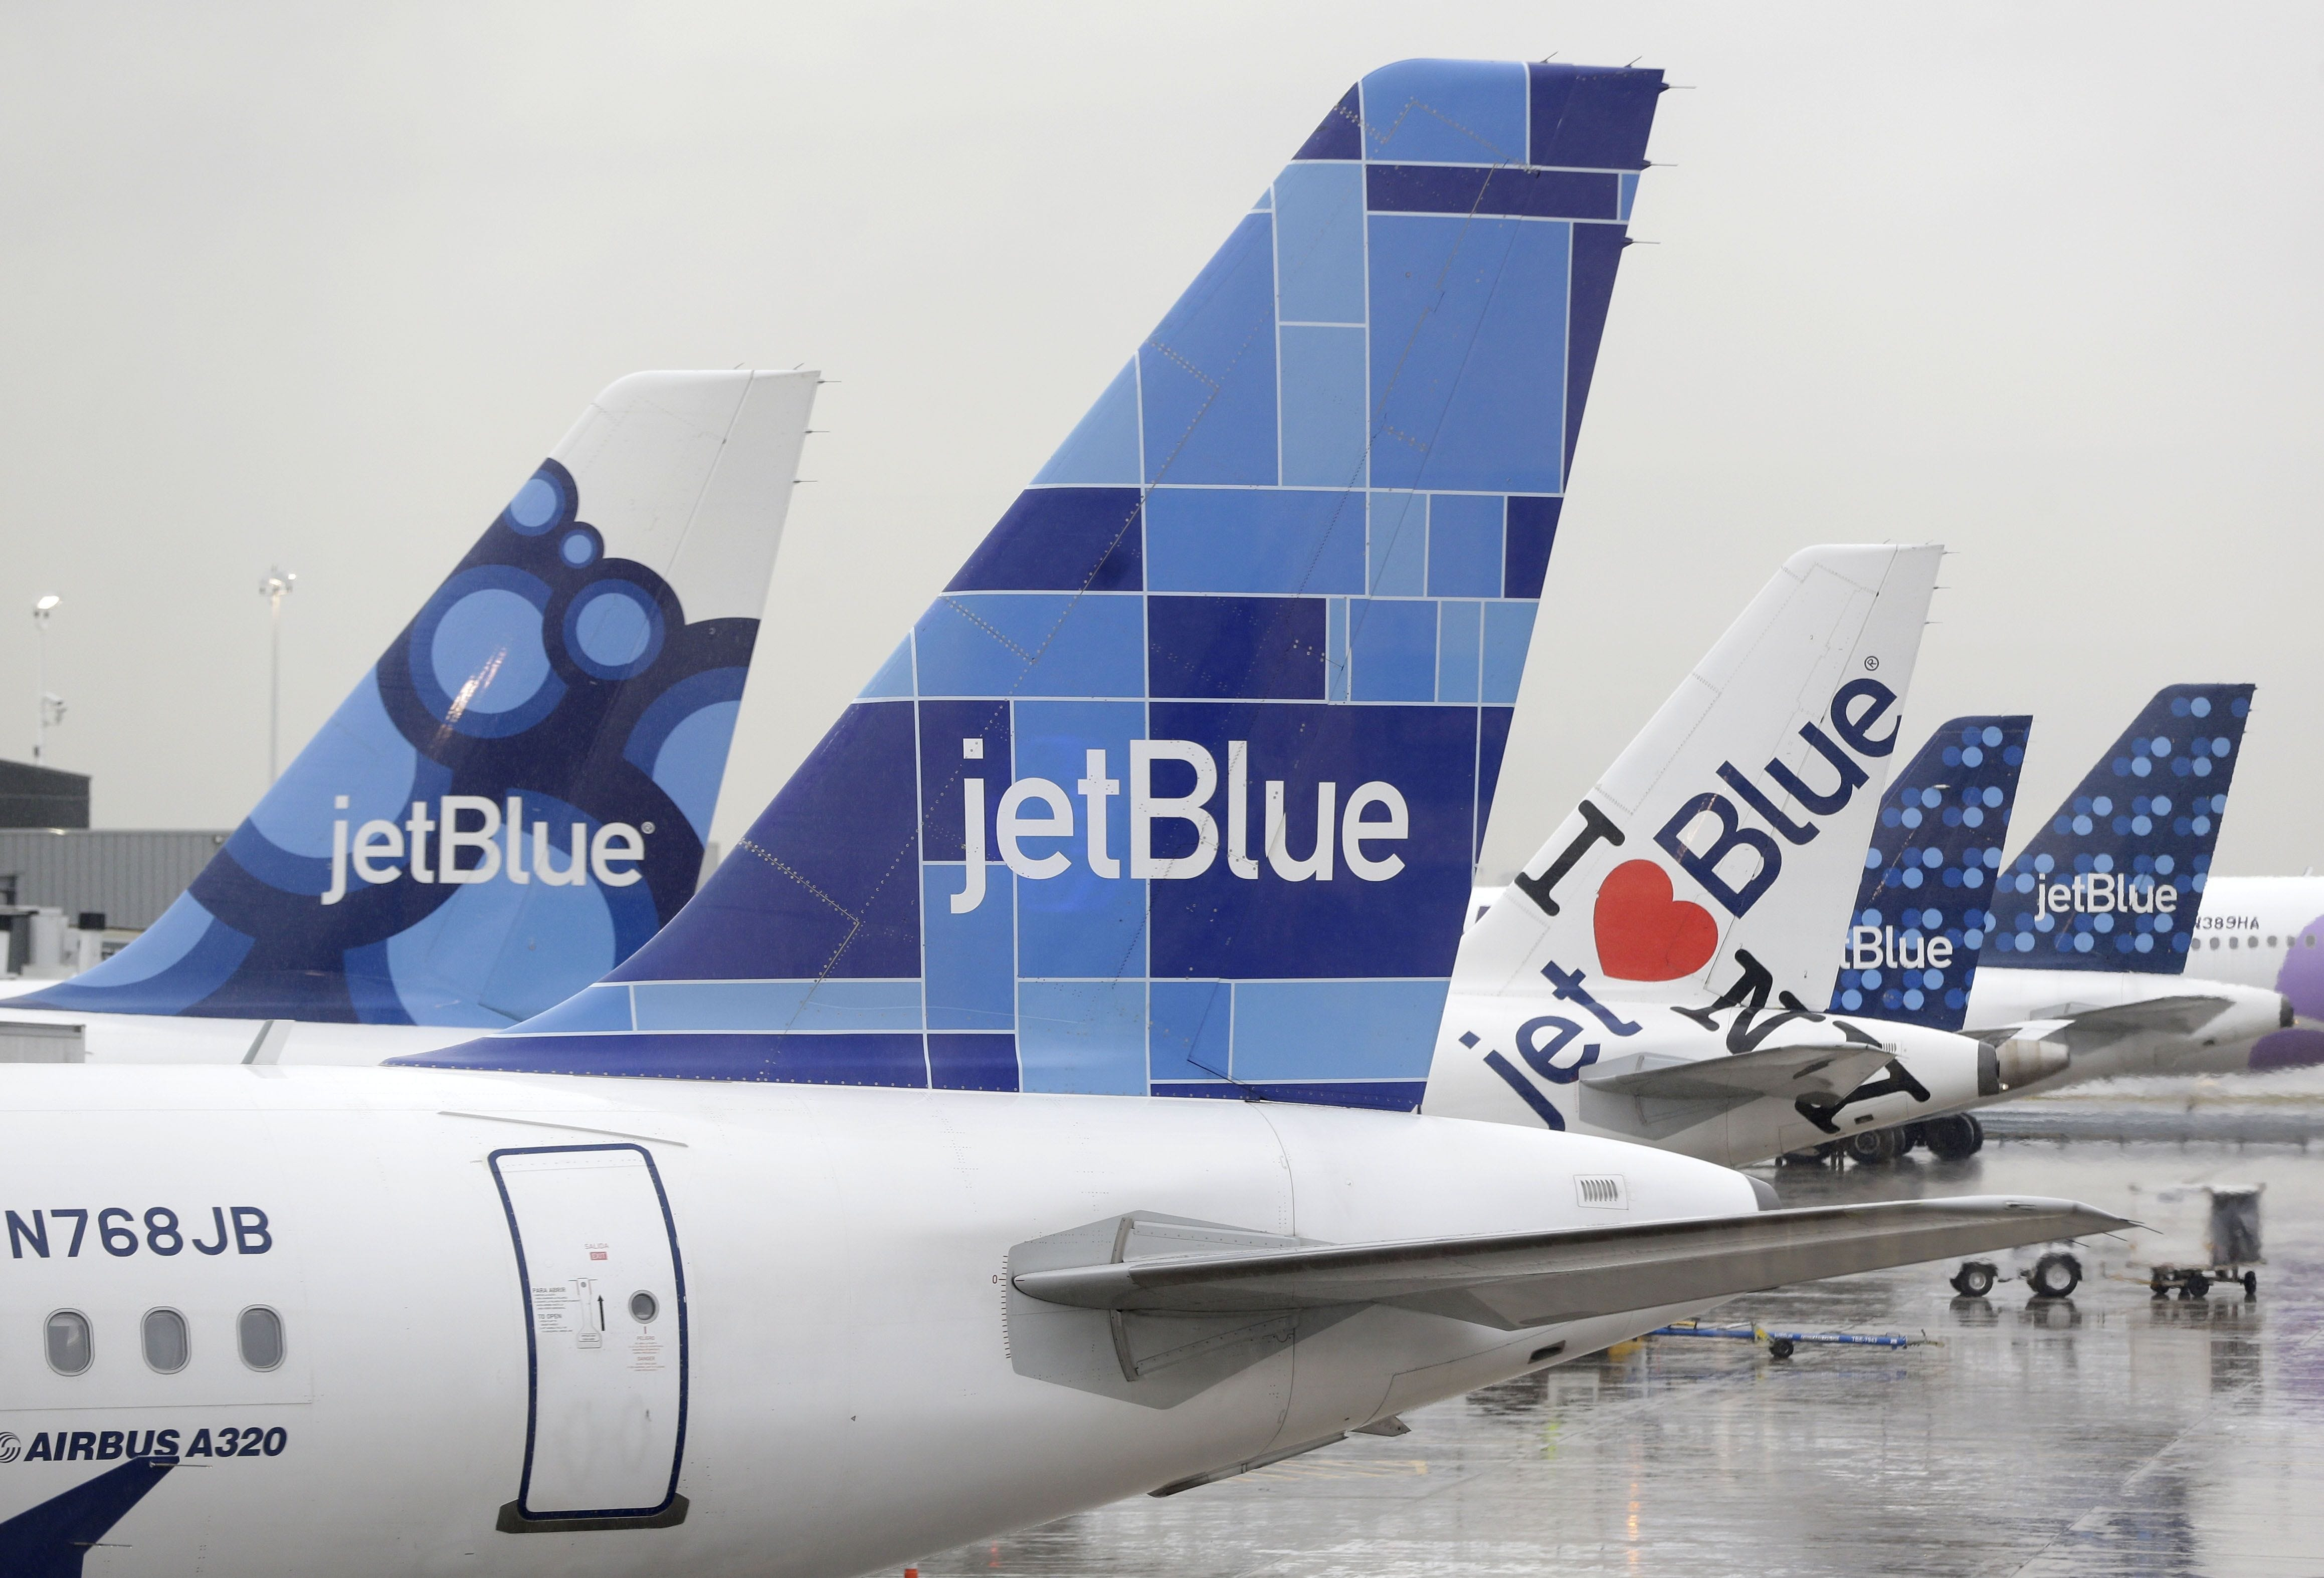 Two-day flash sale: JetBlue fares as low as $49 one way; routes limited